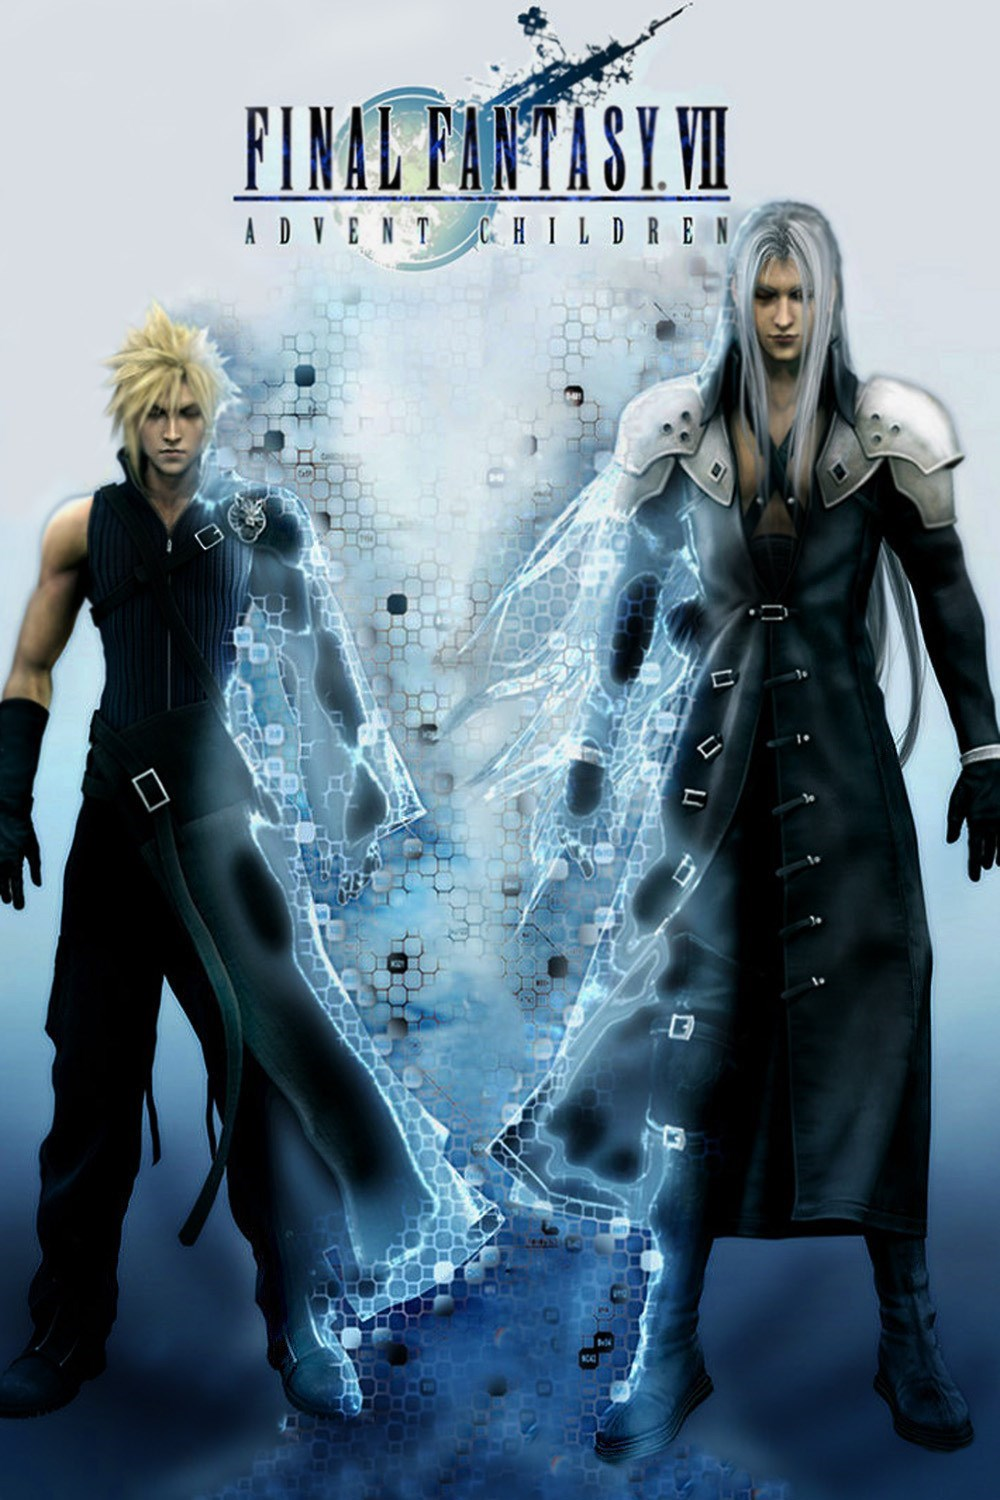 Final Fantasy VII: Advent Children |Película| |Castellano| |Mega|